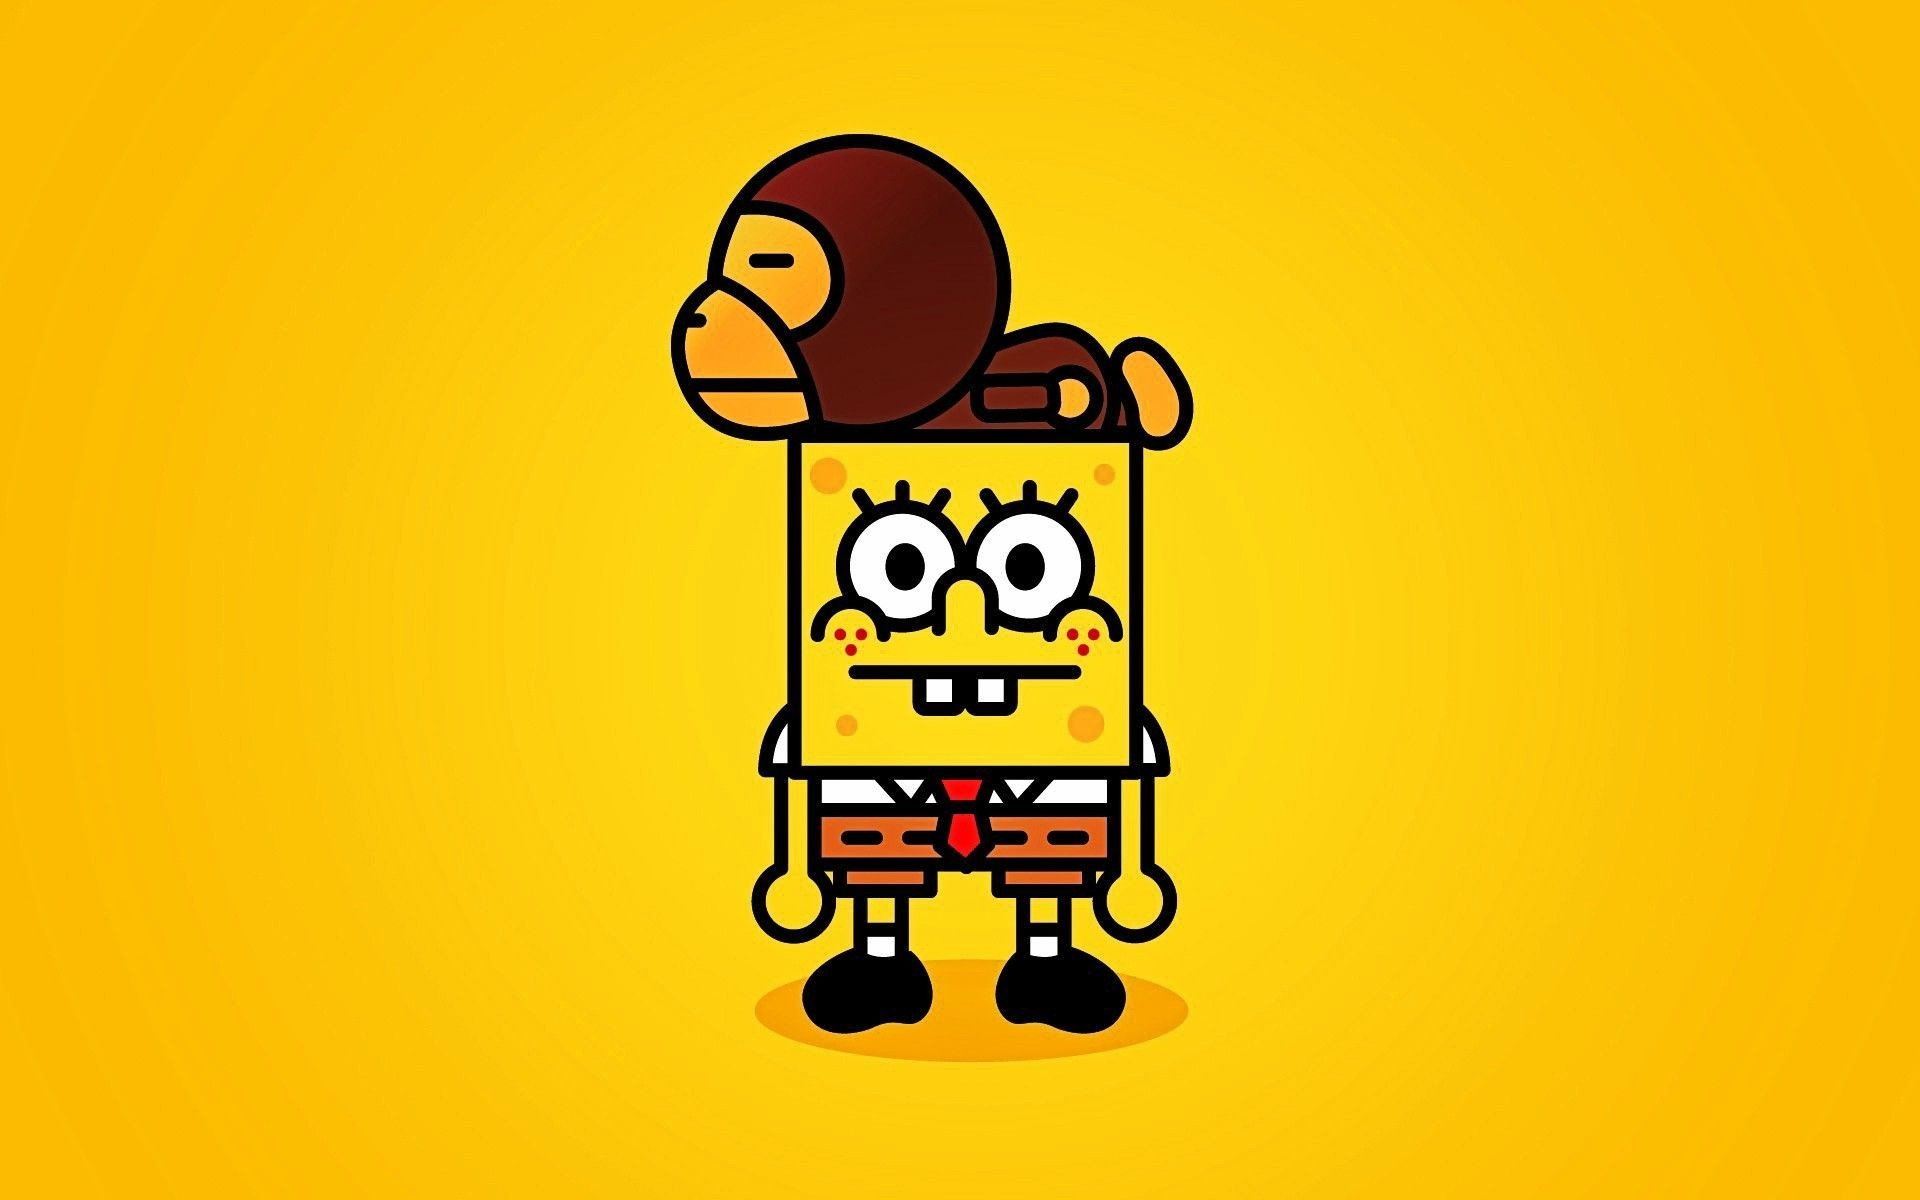 Cool Cartoon Wallpapers 70 images